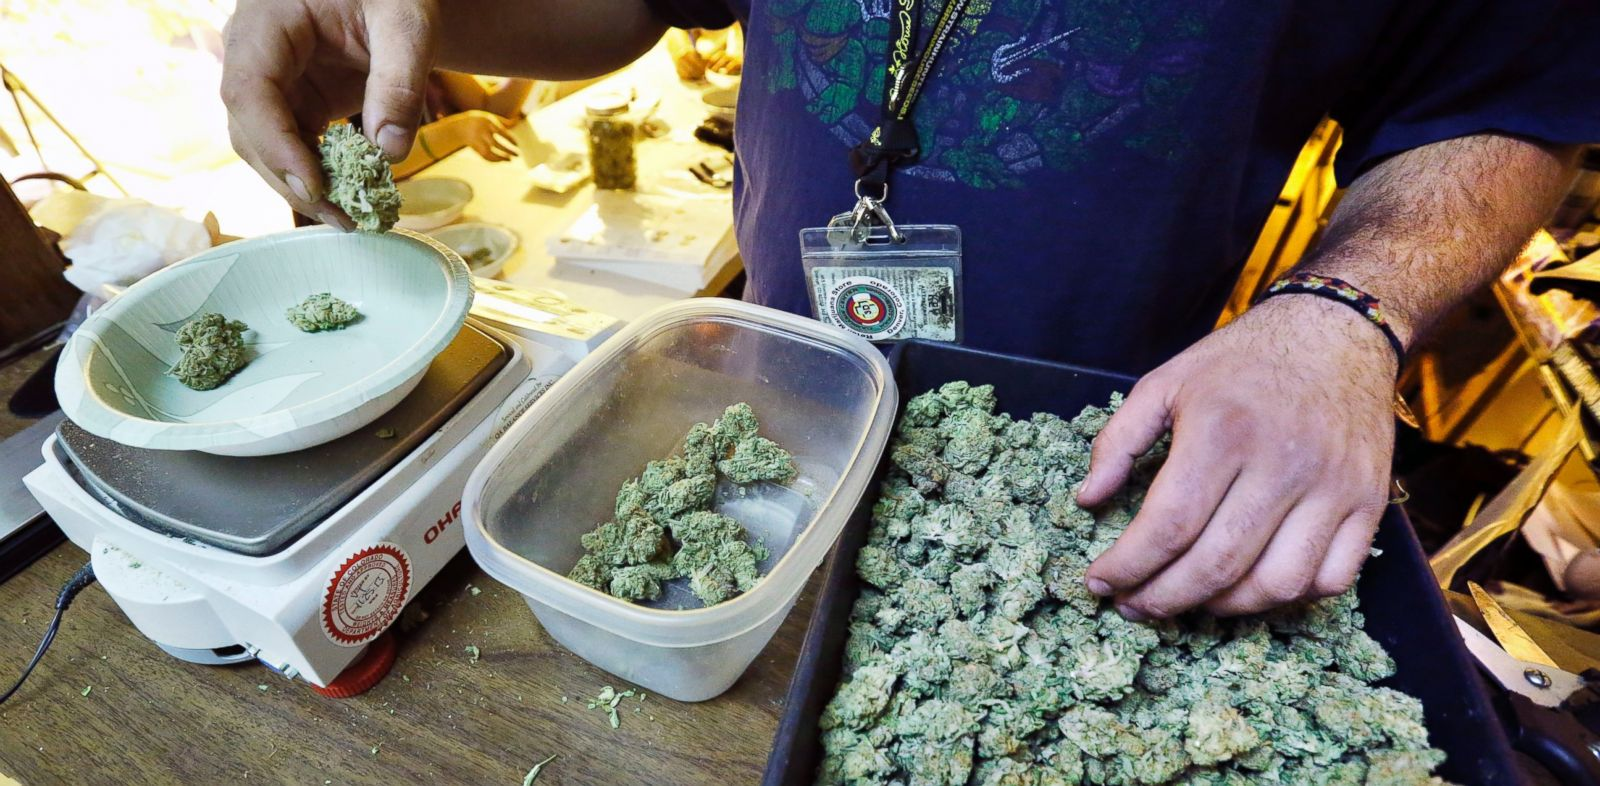 PHOTO: An employee weighs portions of retail marijuana to be packaged and sold at 3D Cannabis Center in Denver, Dec. 31, 2013.